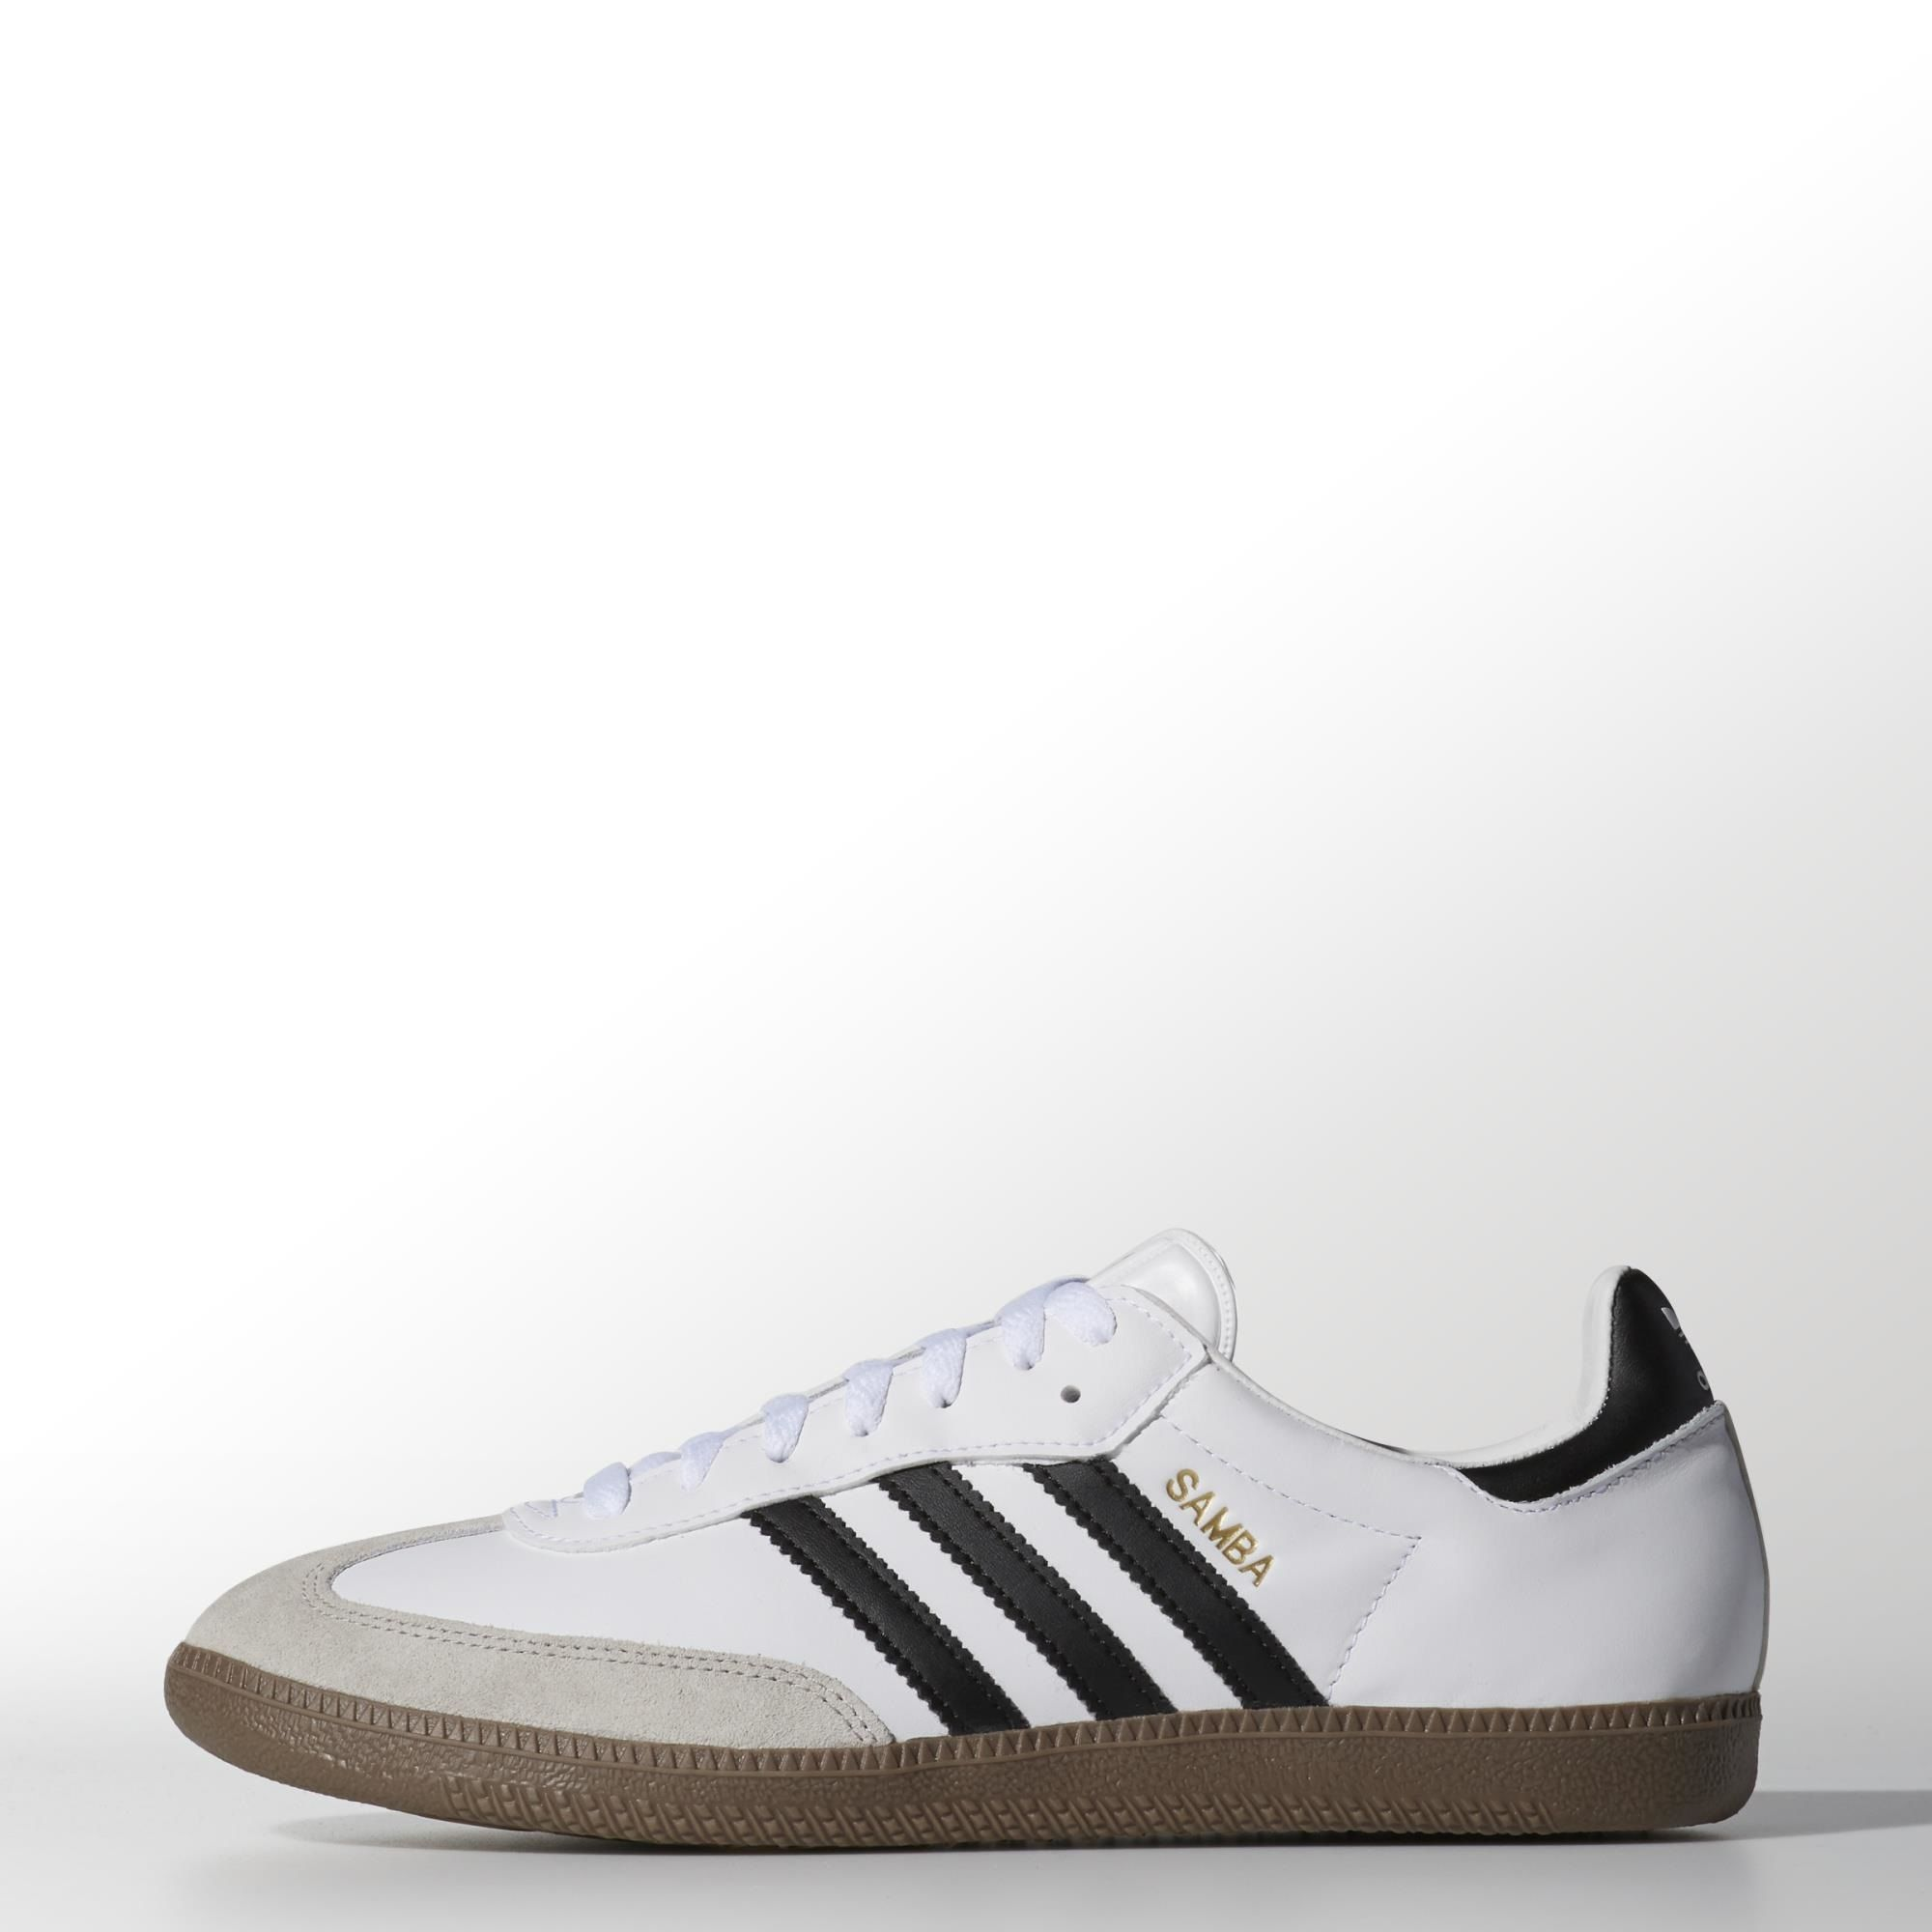 adidas samba shoes wide